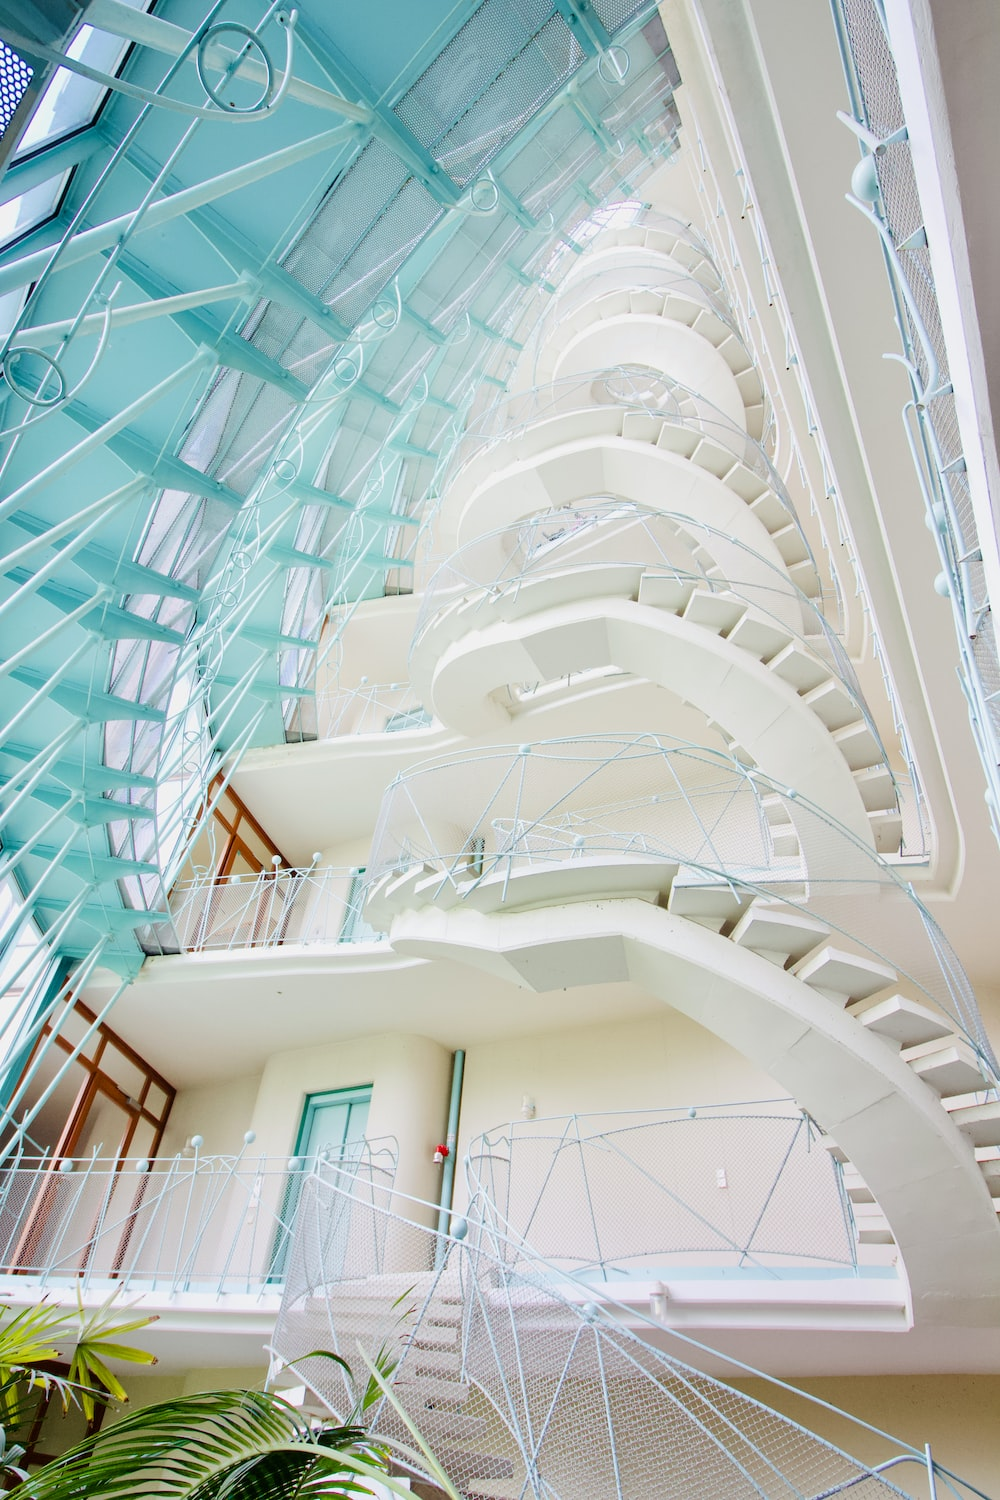 white concrete building with glass roof